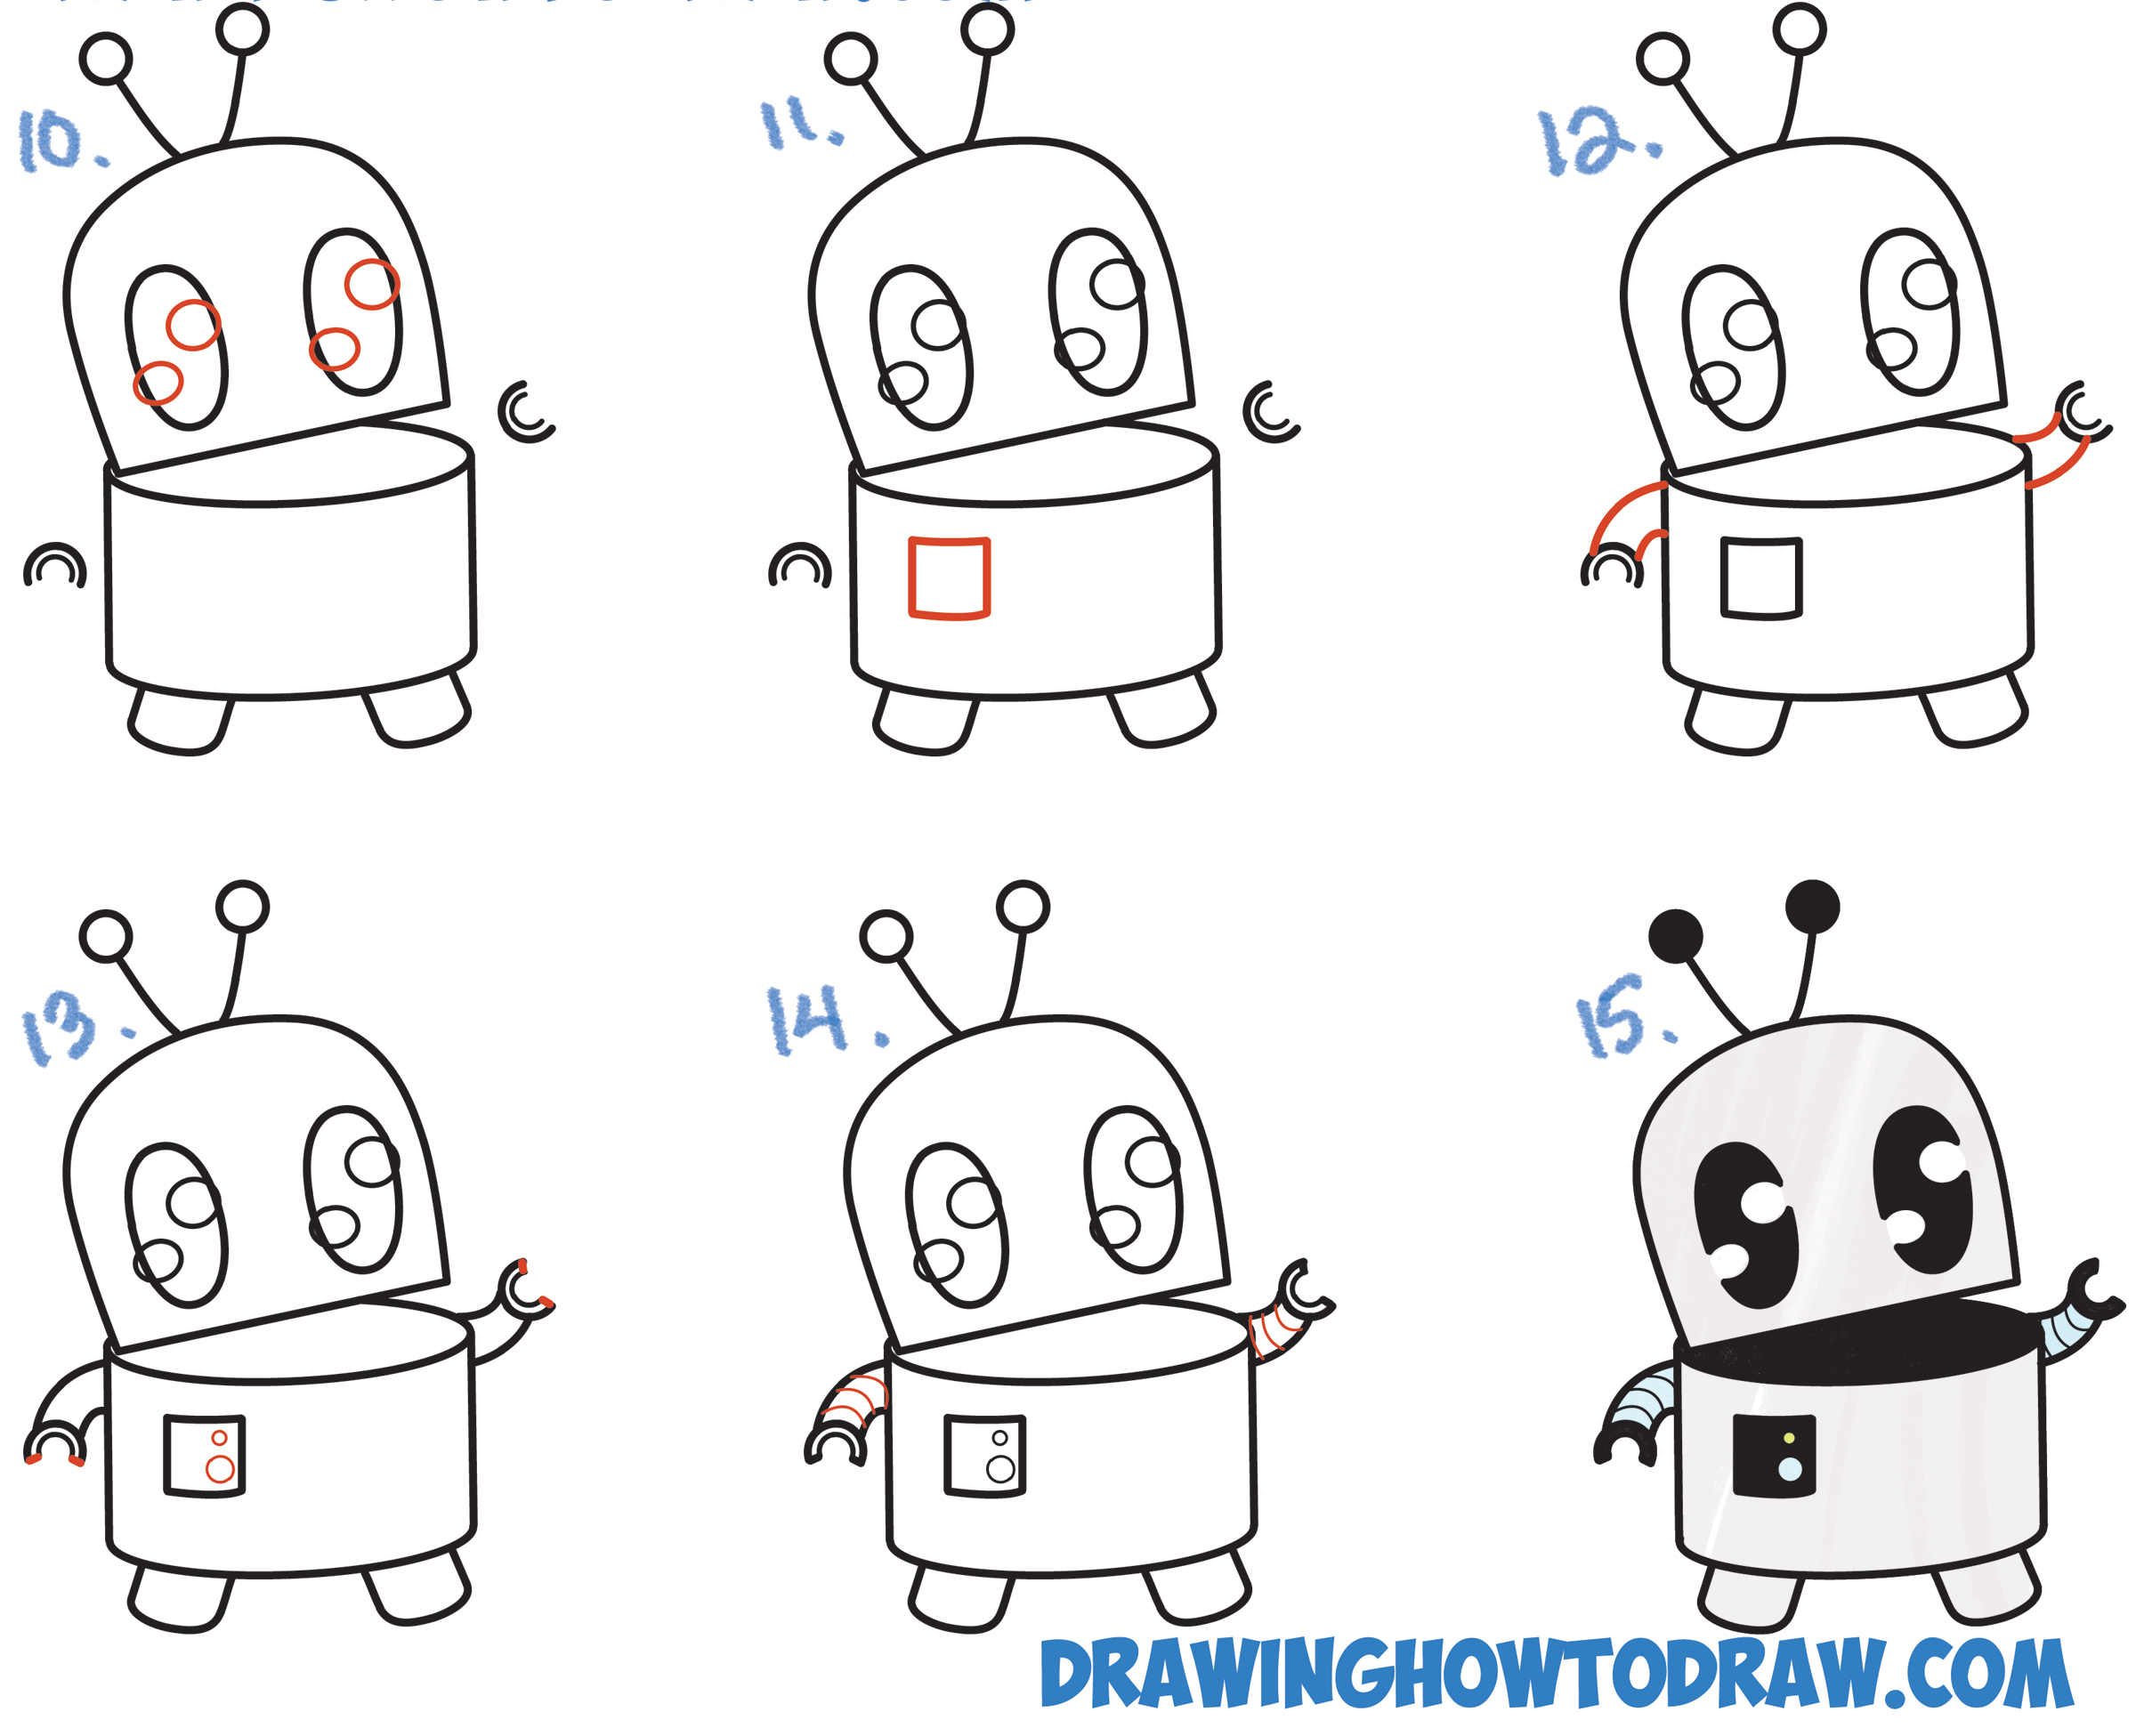 Learn How to Draw a Cute Cartoon Robot Simple Steps Drawing Lesson with Letters and Numbers and Simple Shapes for Kids and Beginners